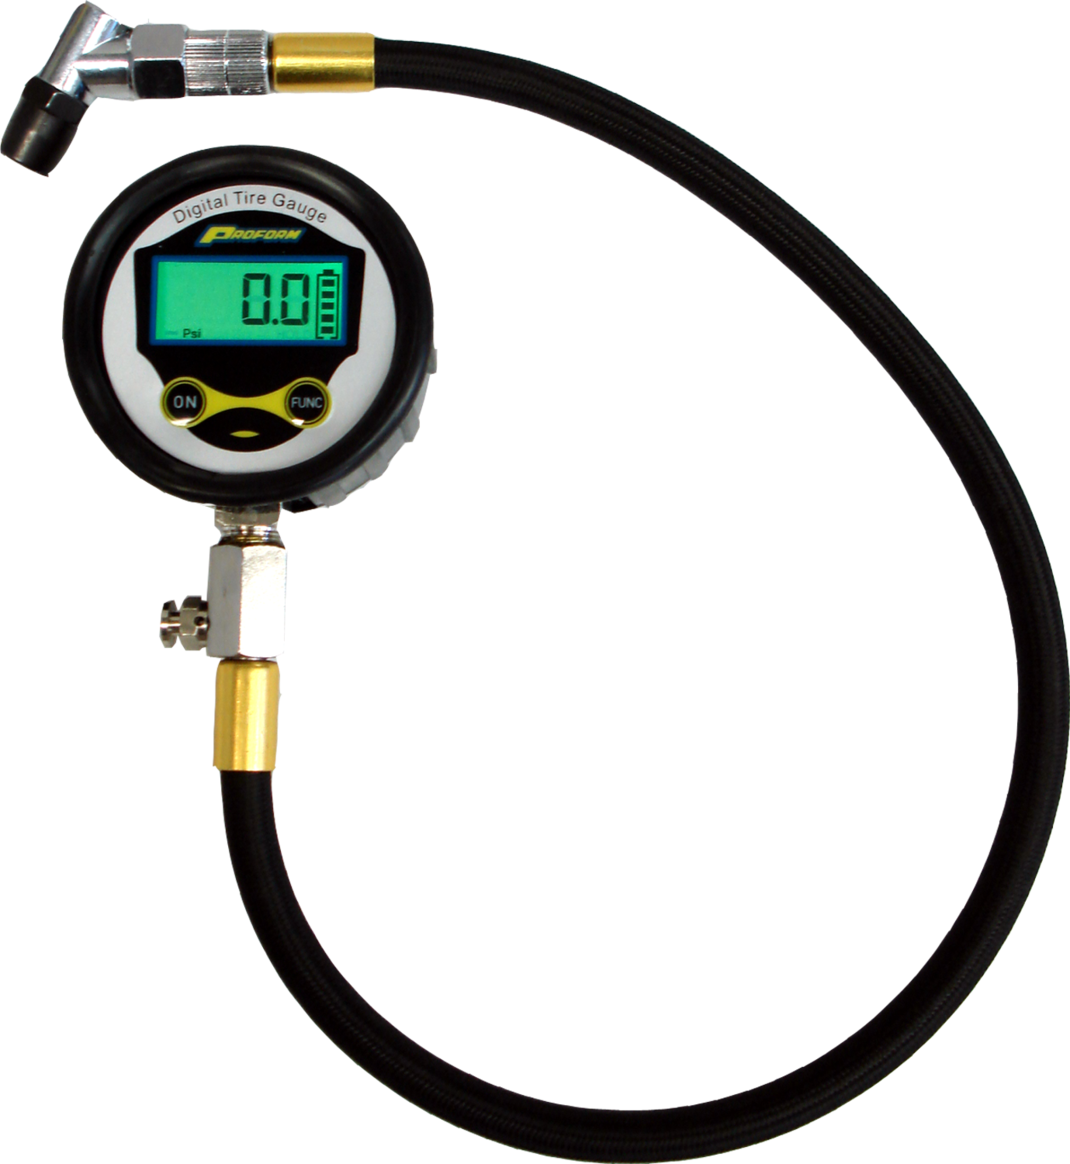 Tire Pressure Gauge : Digital tire pressure gauge psi range